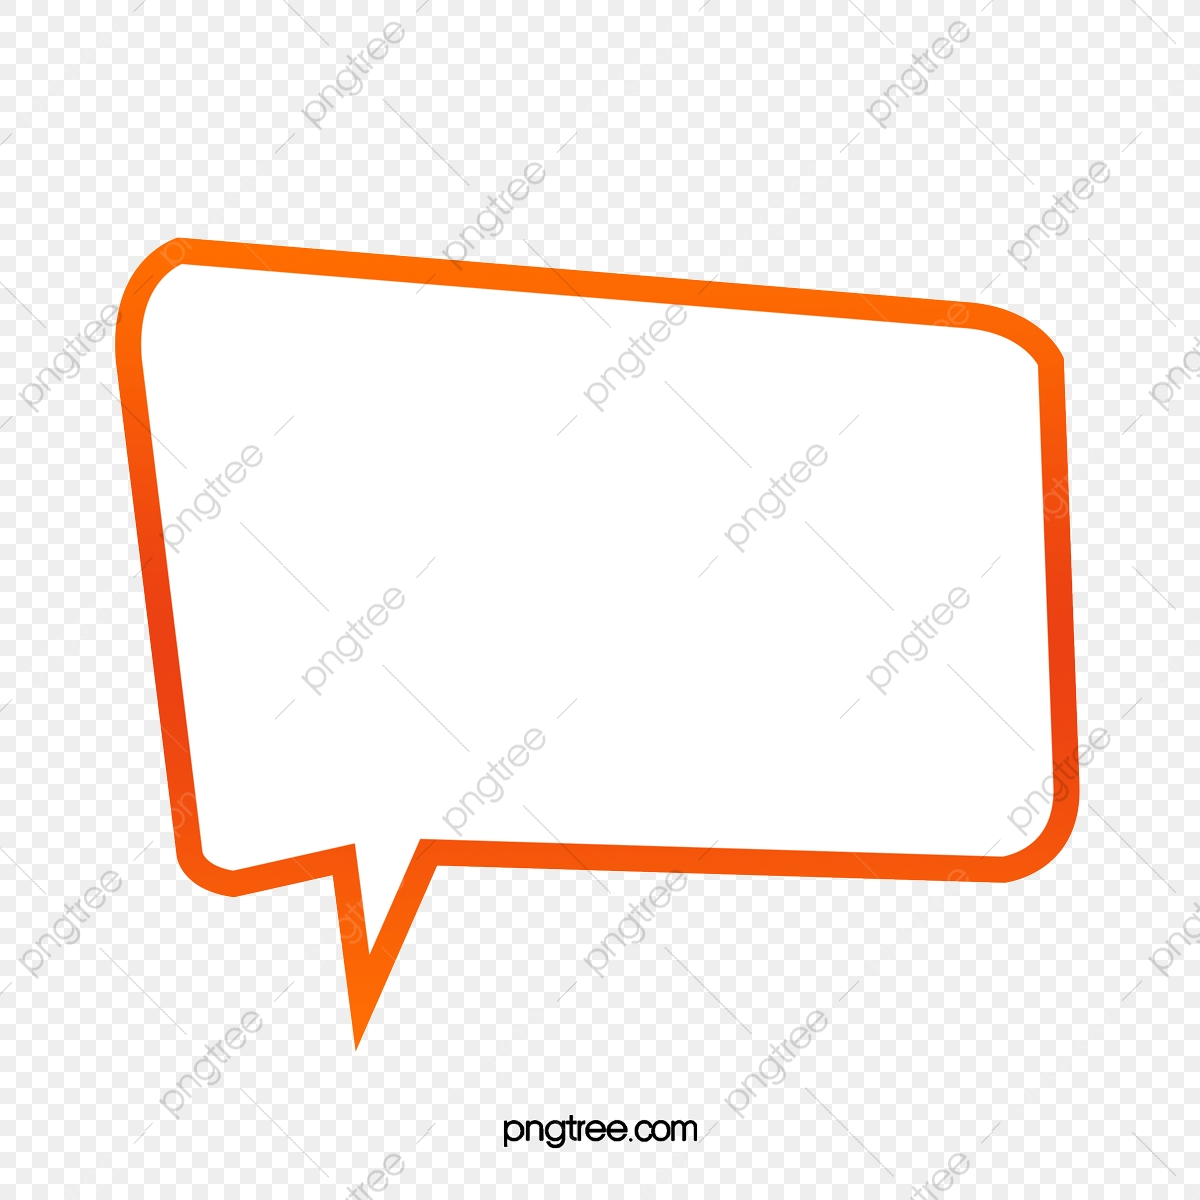 Cartoon Chat Box Material, Cartoon Clipart, Gradient, Chat Box PNG